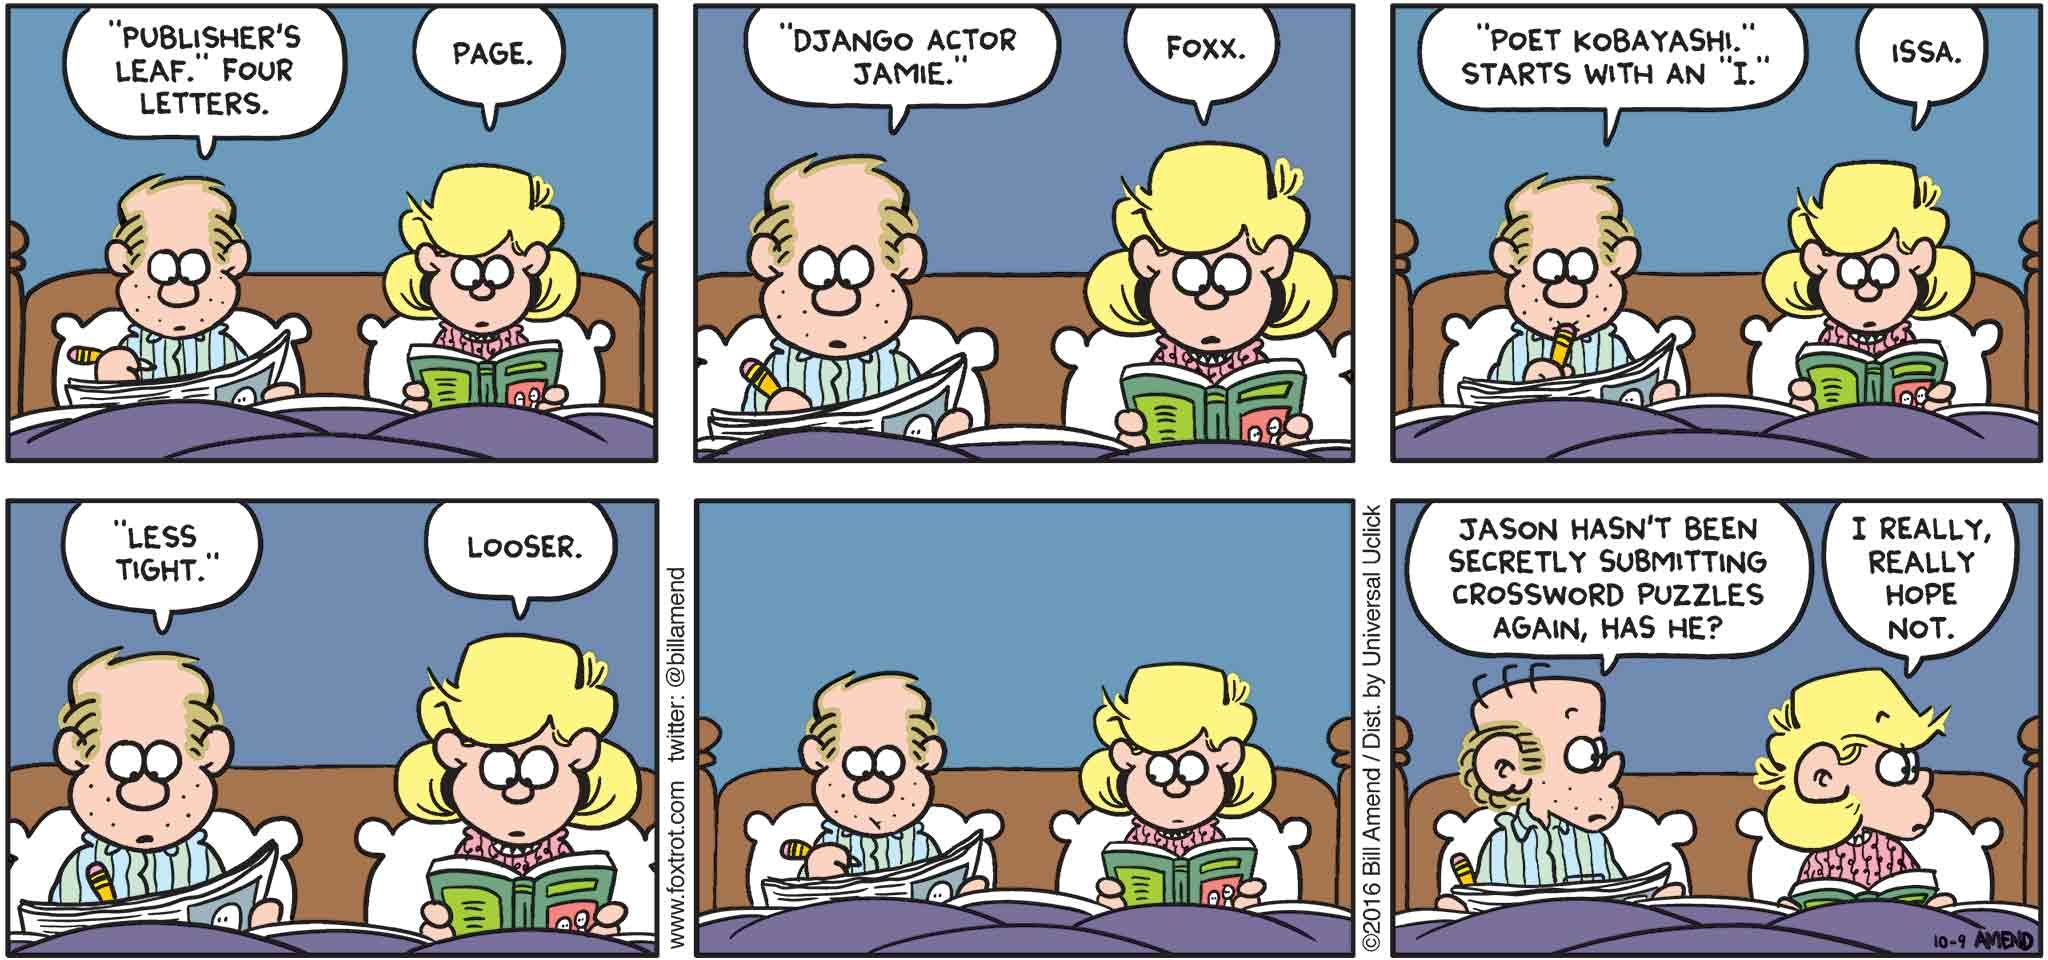 "FoxTrot by Bill Amend - ""Puzzling"" published October 9, 2016 - Roger: ""Publisher's leaf."" Four letters. Andy: Page. Roger: ""Django actor Jamie."" Andy: Foxx. Roger: ""Poet Kobayashi."" Starts with an ""I."" Andy: Issa. Roger: ""Less tight."" Andy: Looser. Roger: Jason hasn't been secretly submitting crossword puzzles again, has he? Andy: I really, really hope not."